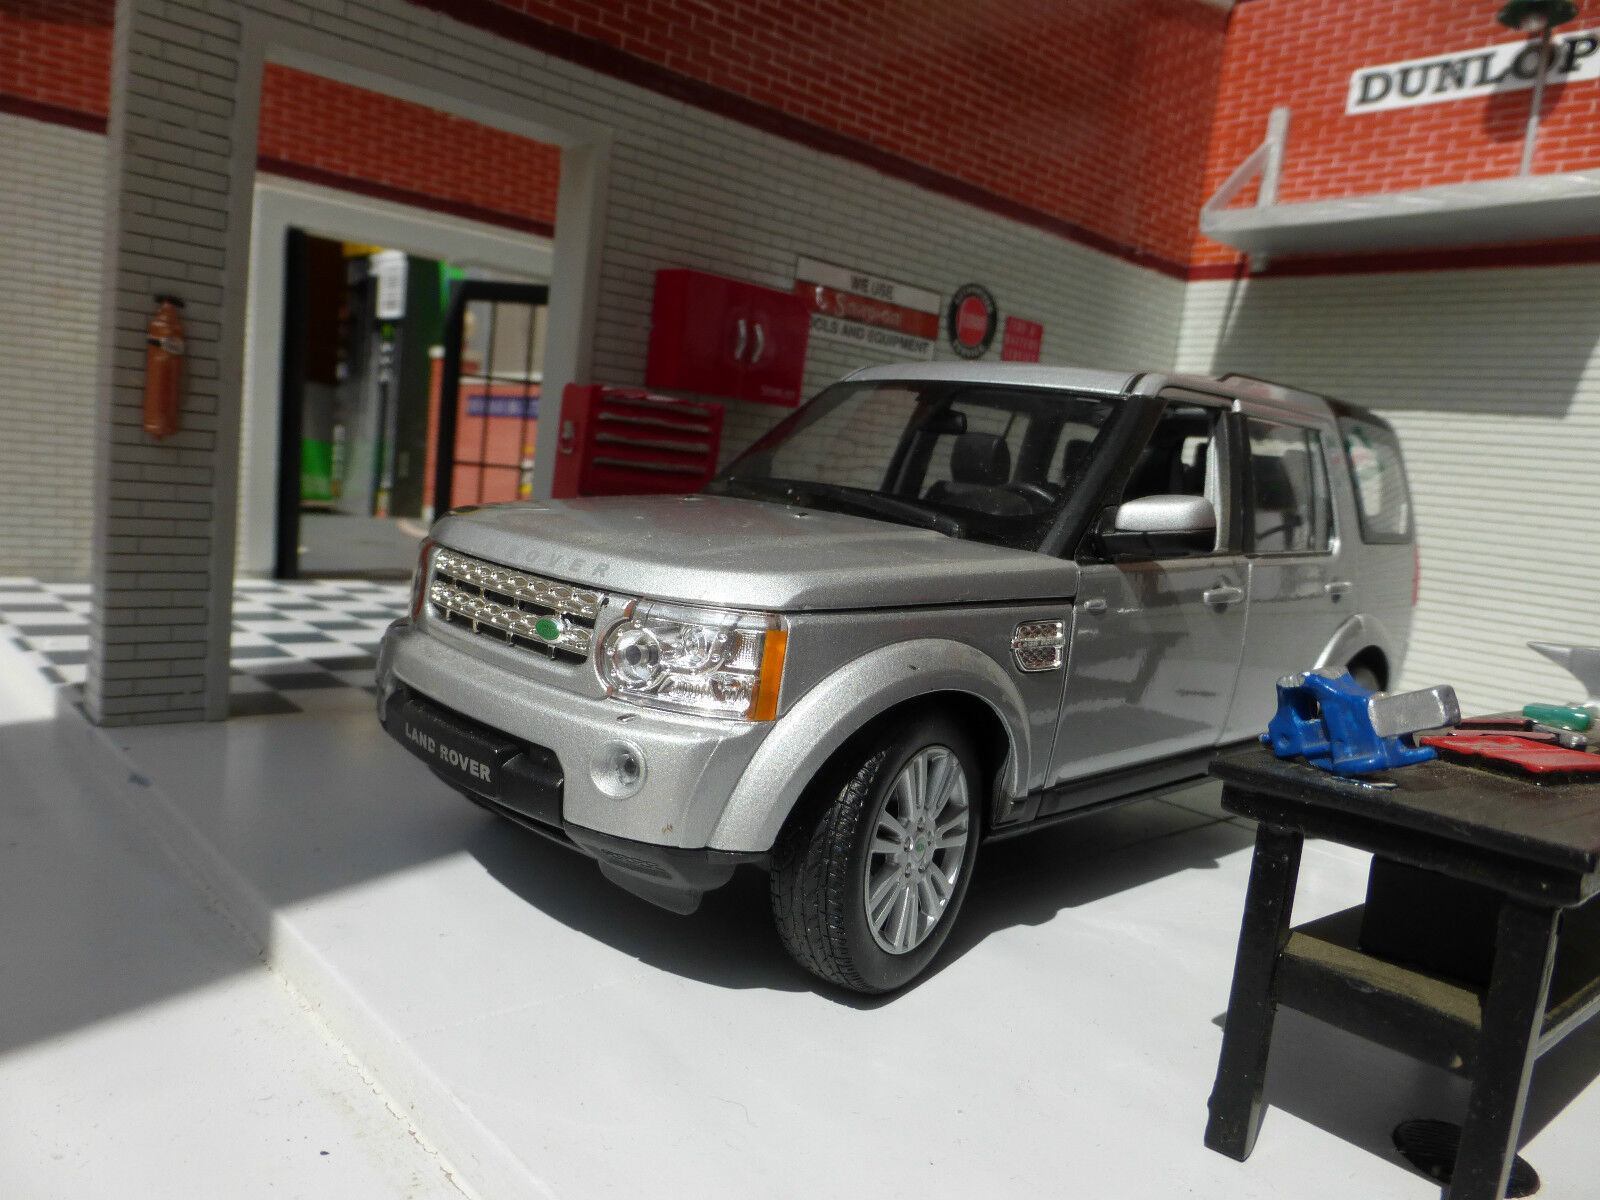 Land Rover Discovery 4 Tdv6 White 2015 1 24 Scale Diecast